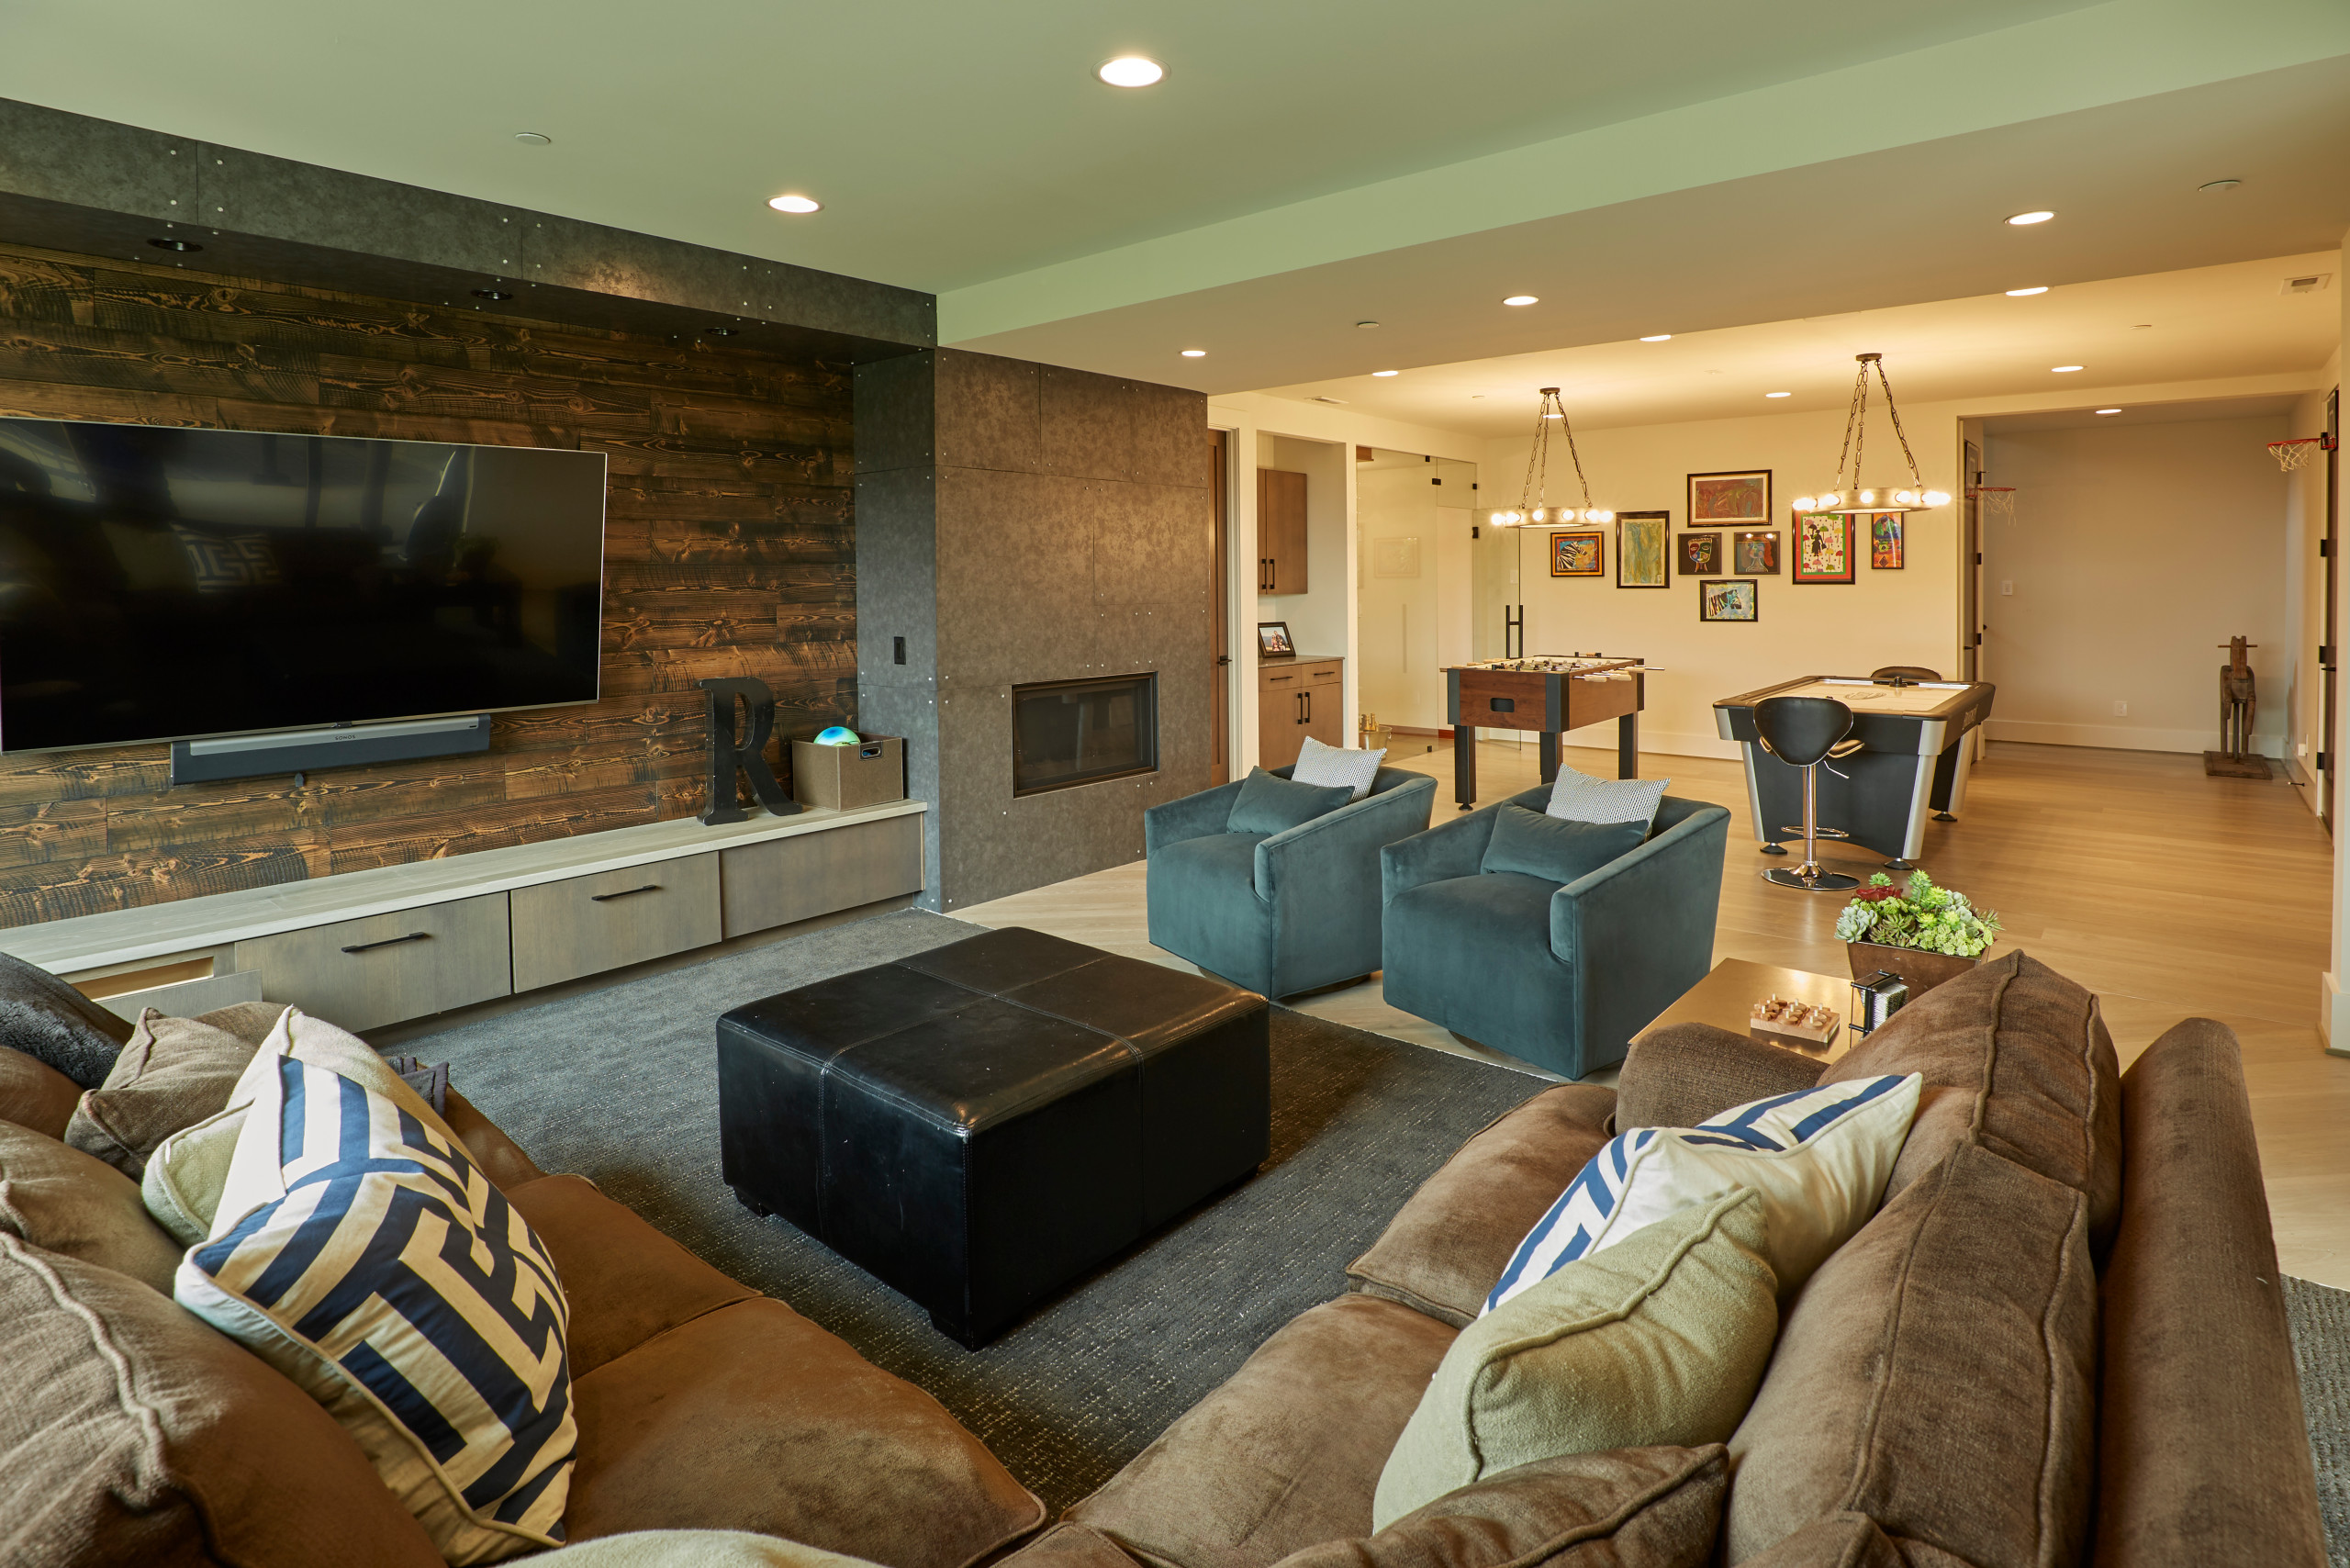 75 Beautiful Green Game Room Pictures Ideas February 2021 Houzz